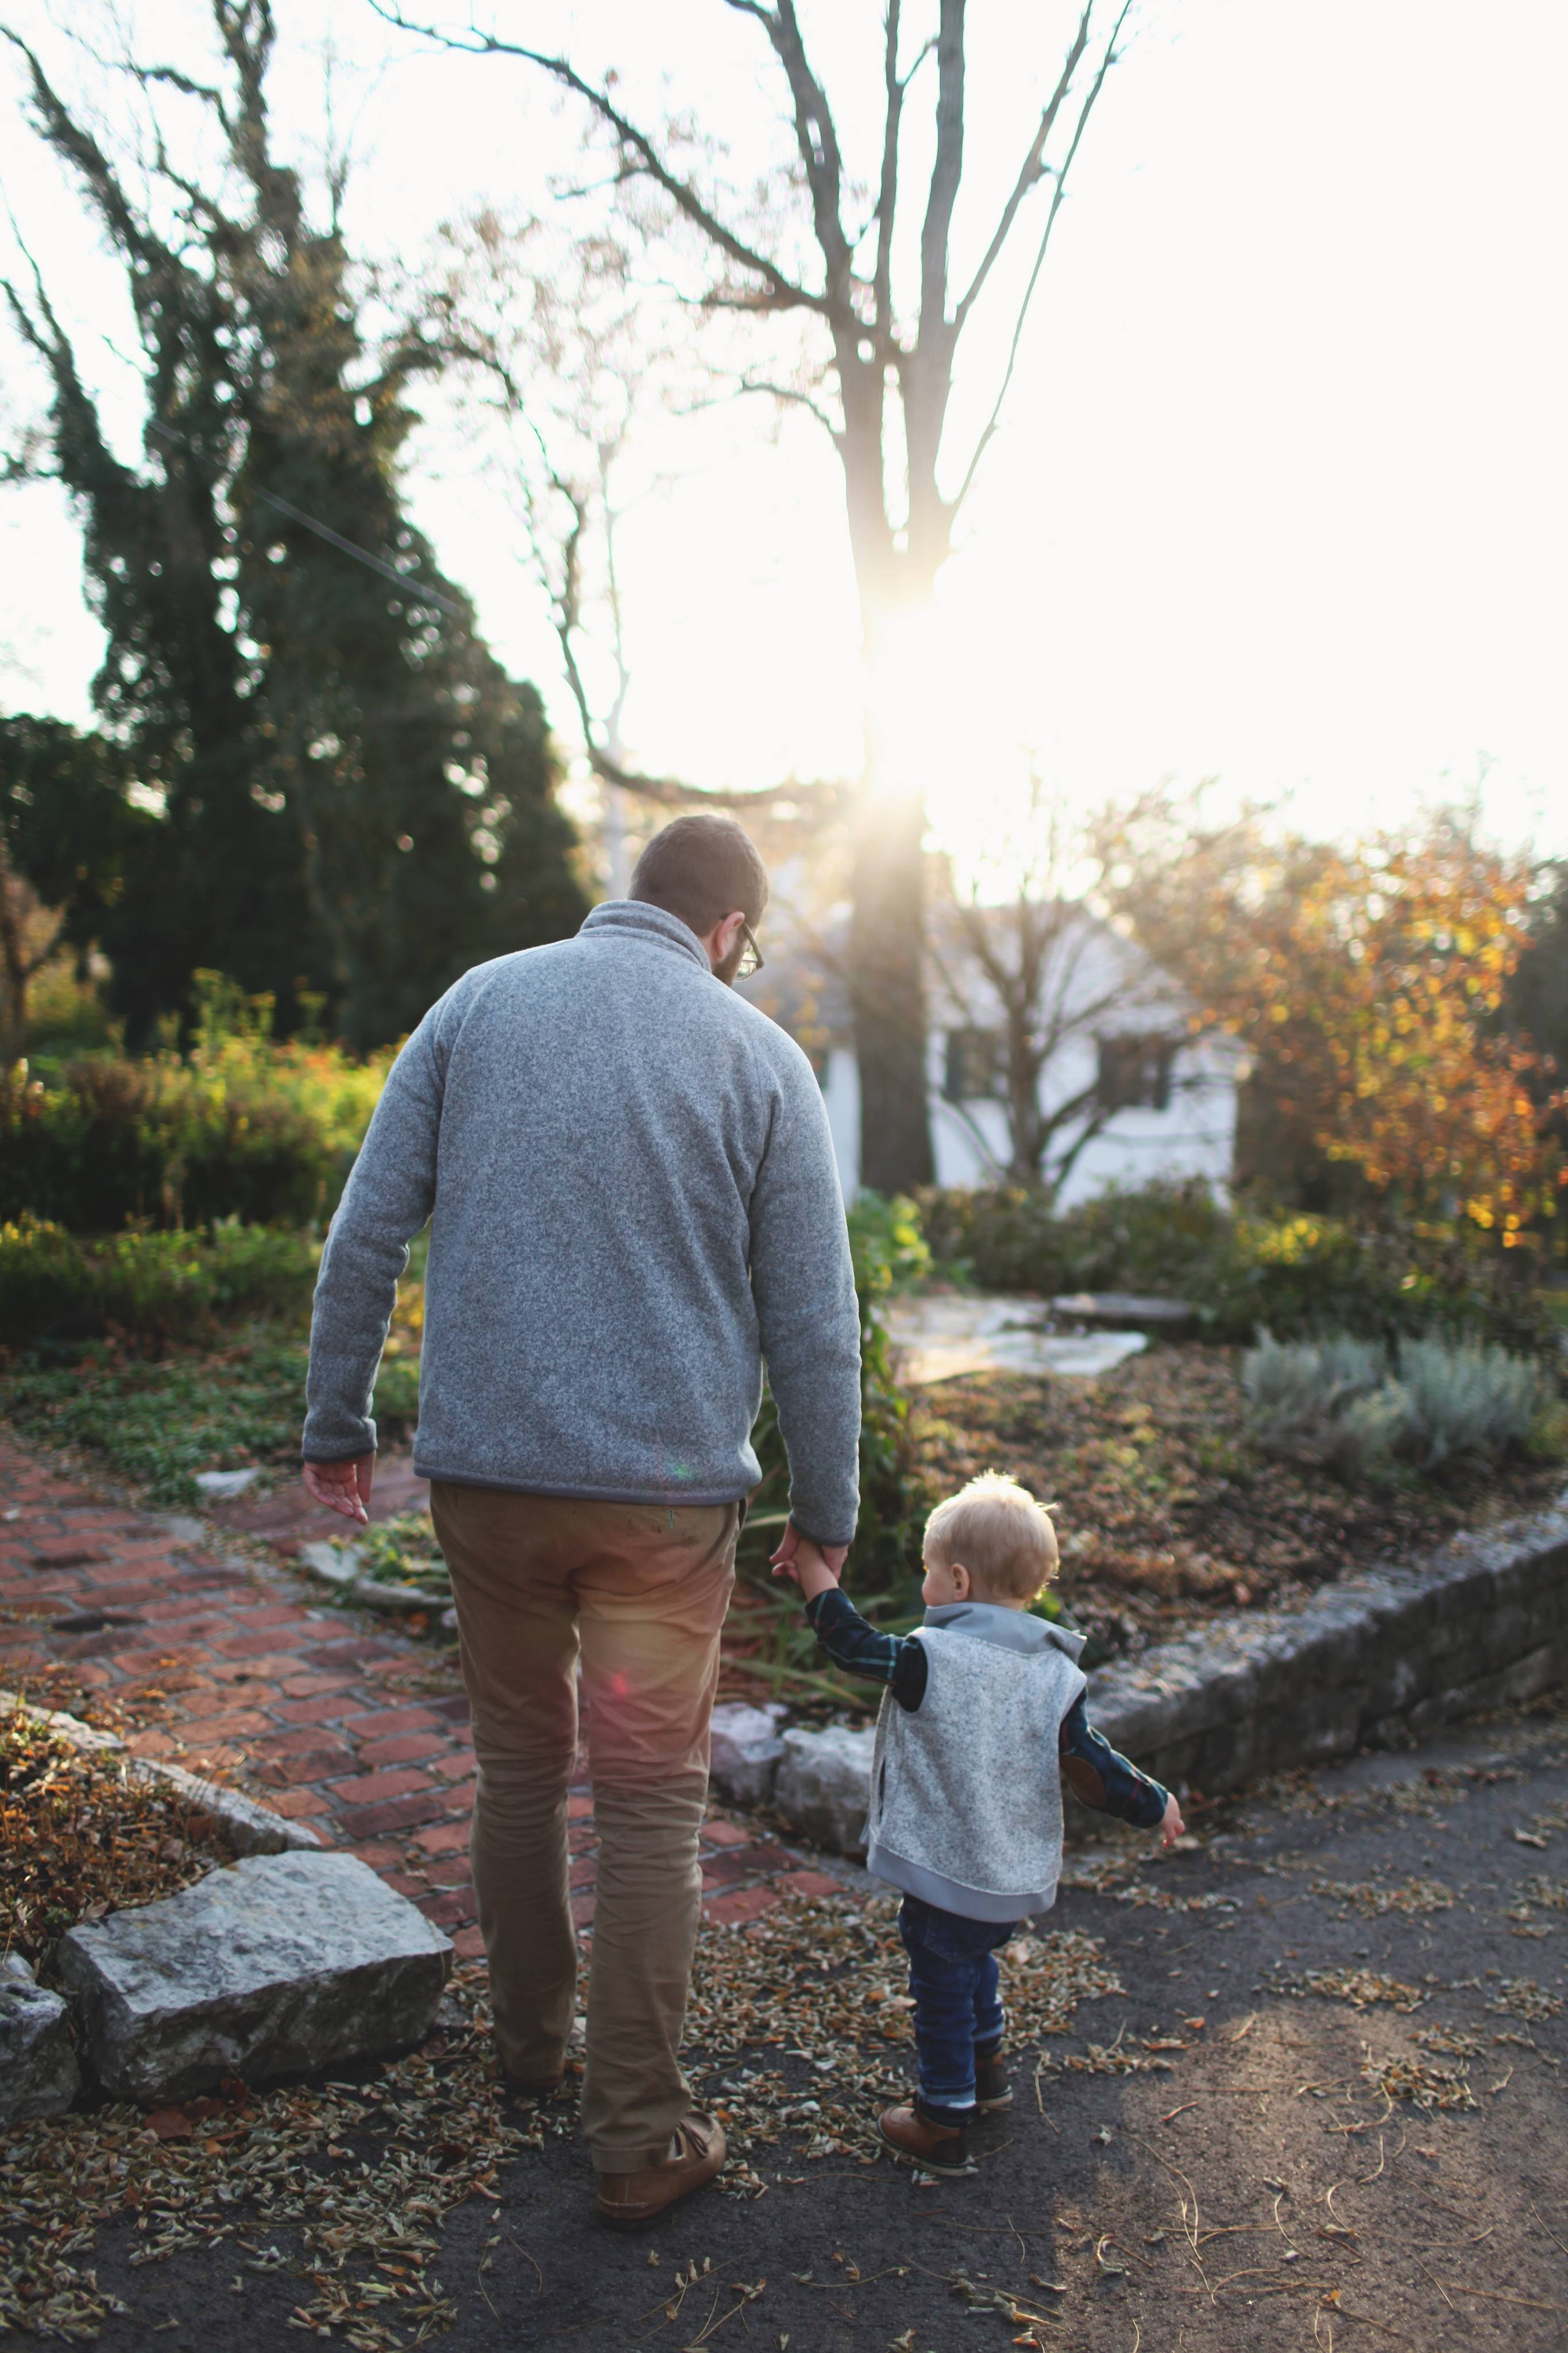 Man holding hands with baby while walking through pathway facing sunlight photo